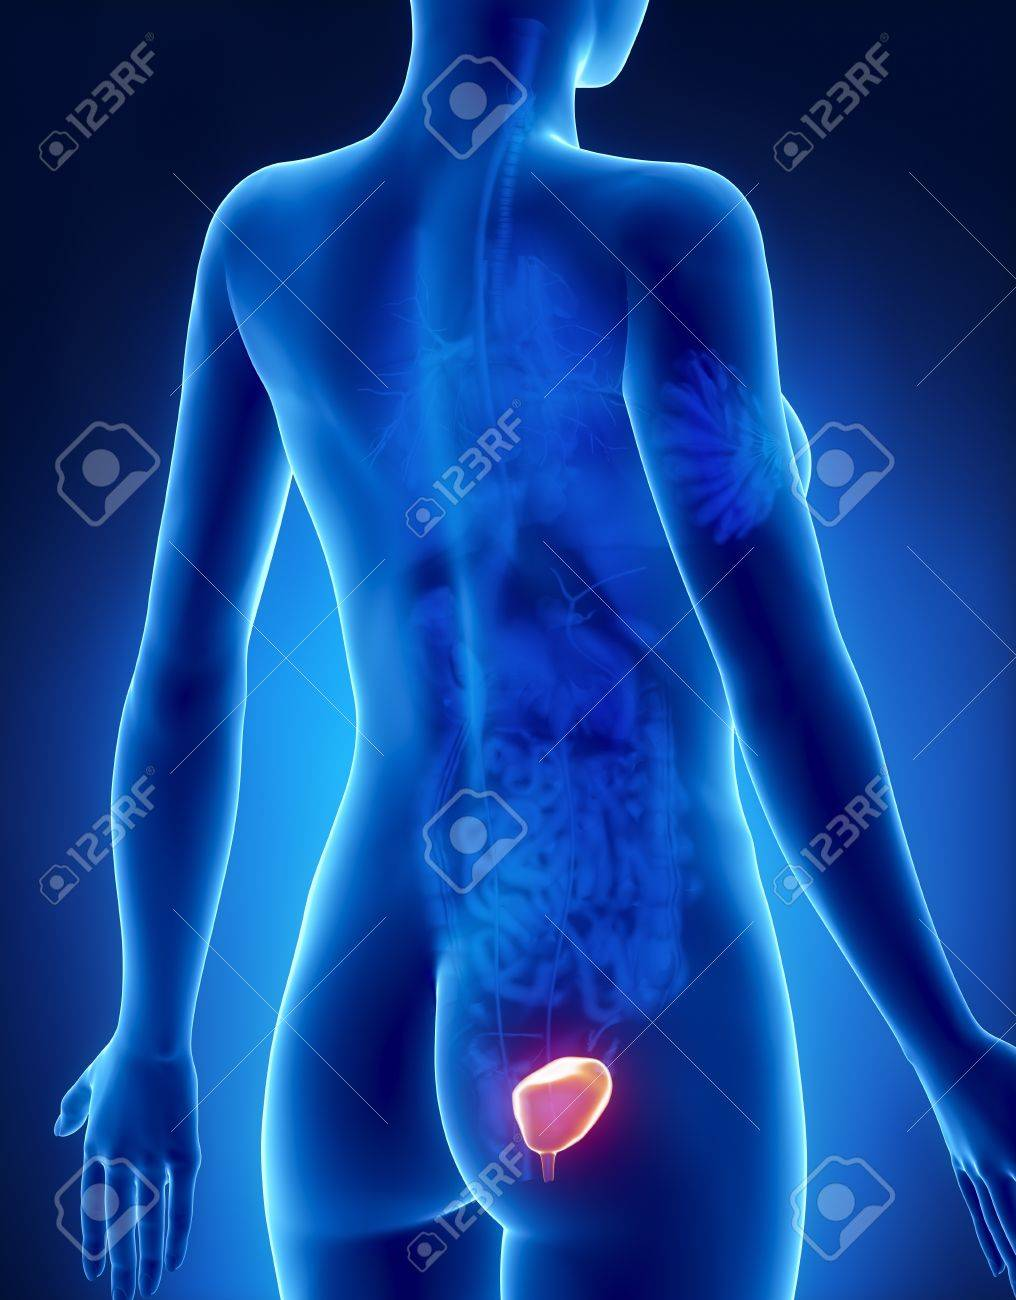 Female BLADDER Anatomy X-ray Posterior View Stock Photo, Picture And ...